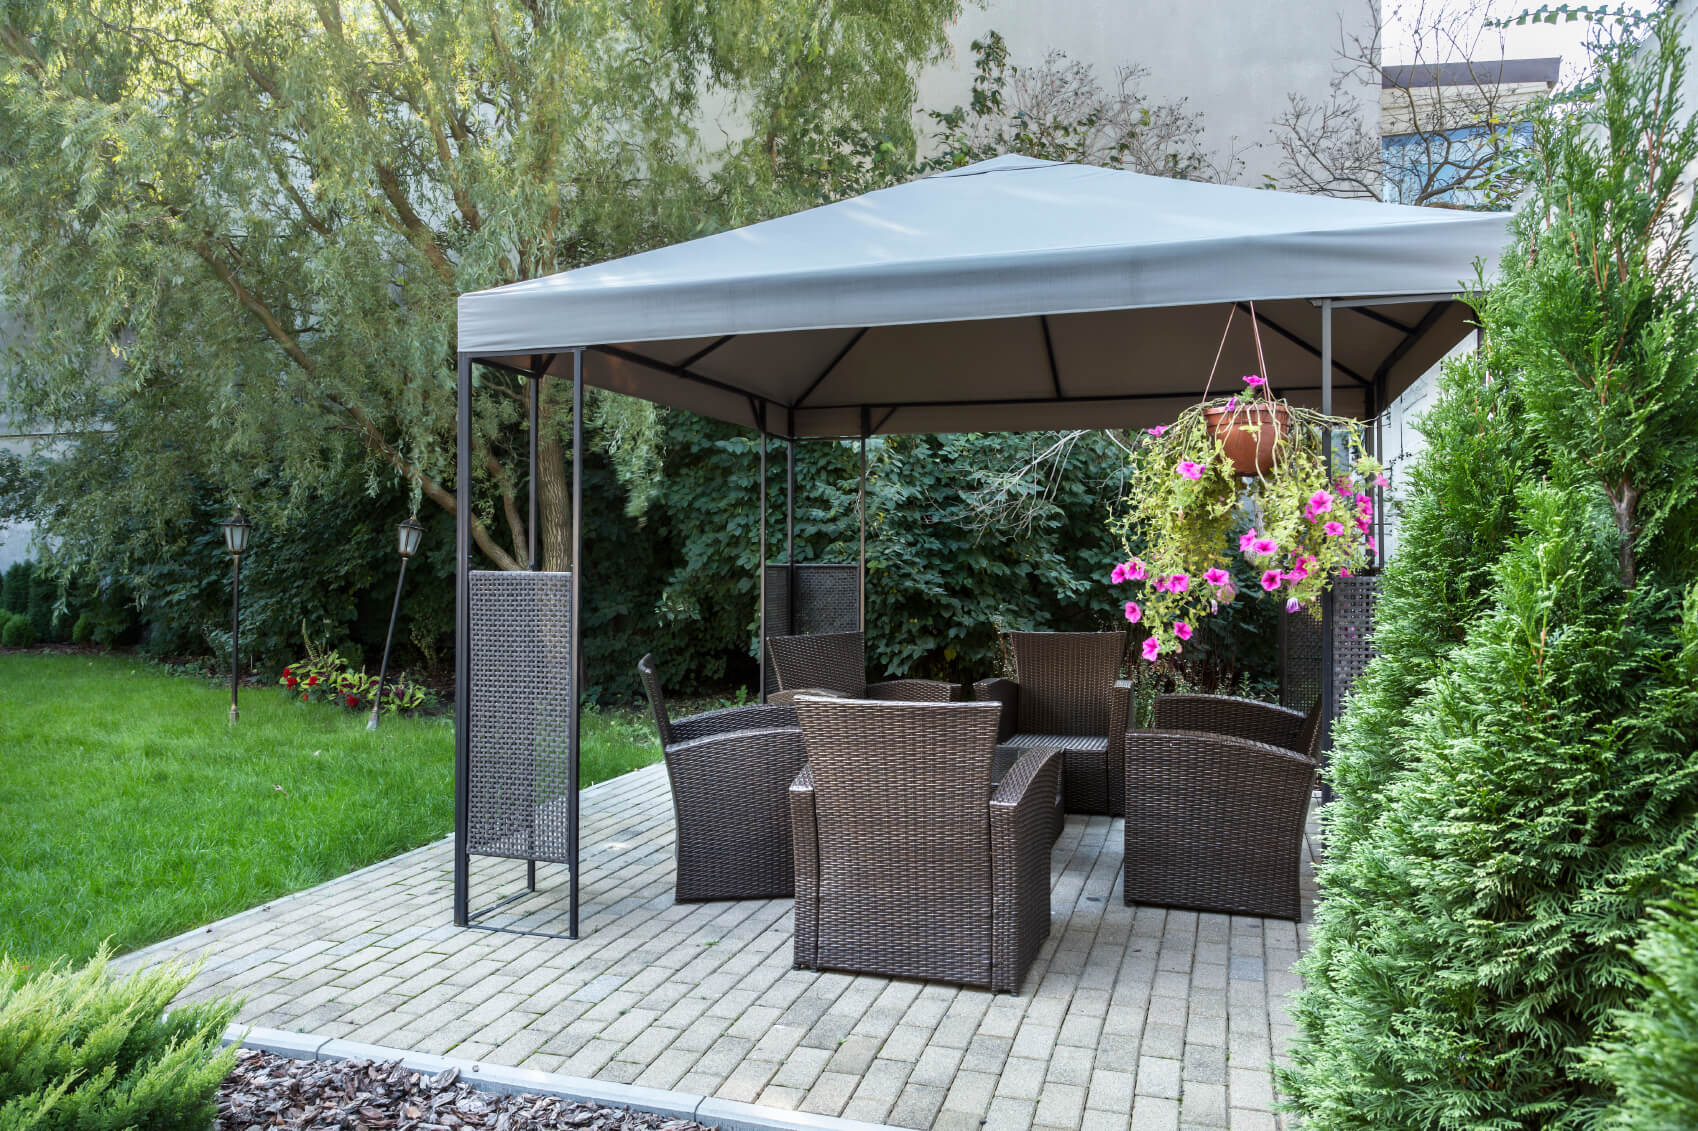 26 portable gazebos that will keep the bugs out - Build rectangular gazebo guide models ...